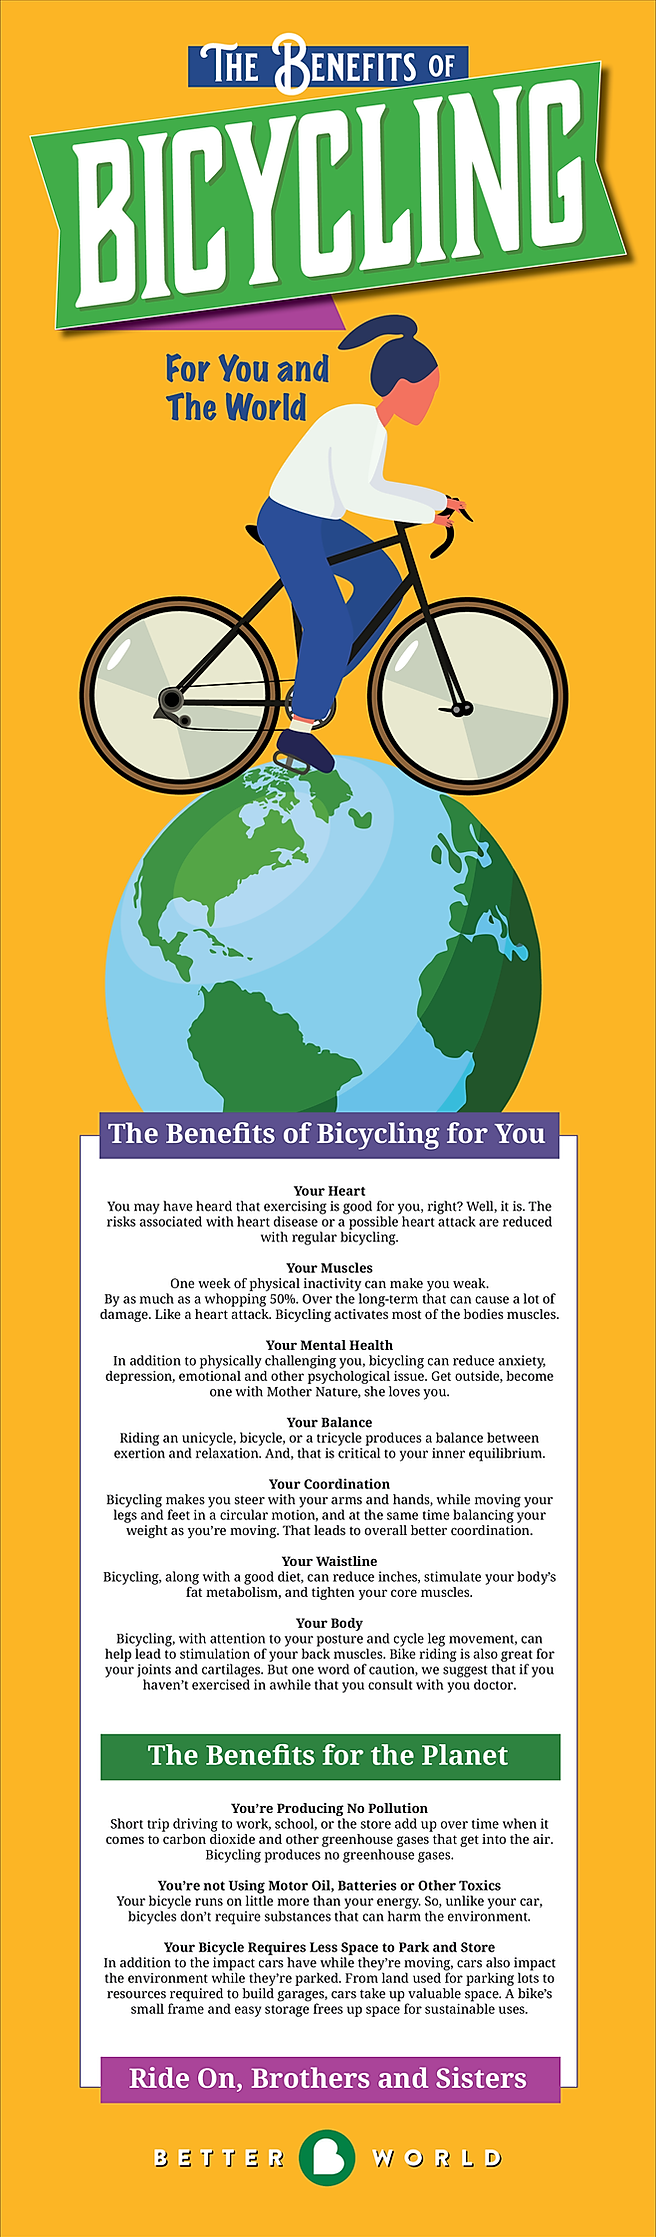 Better World Club bicycle riding benefits for health and the environment